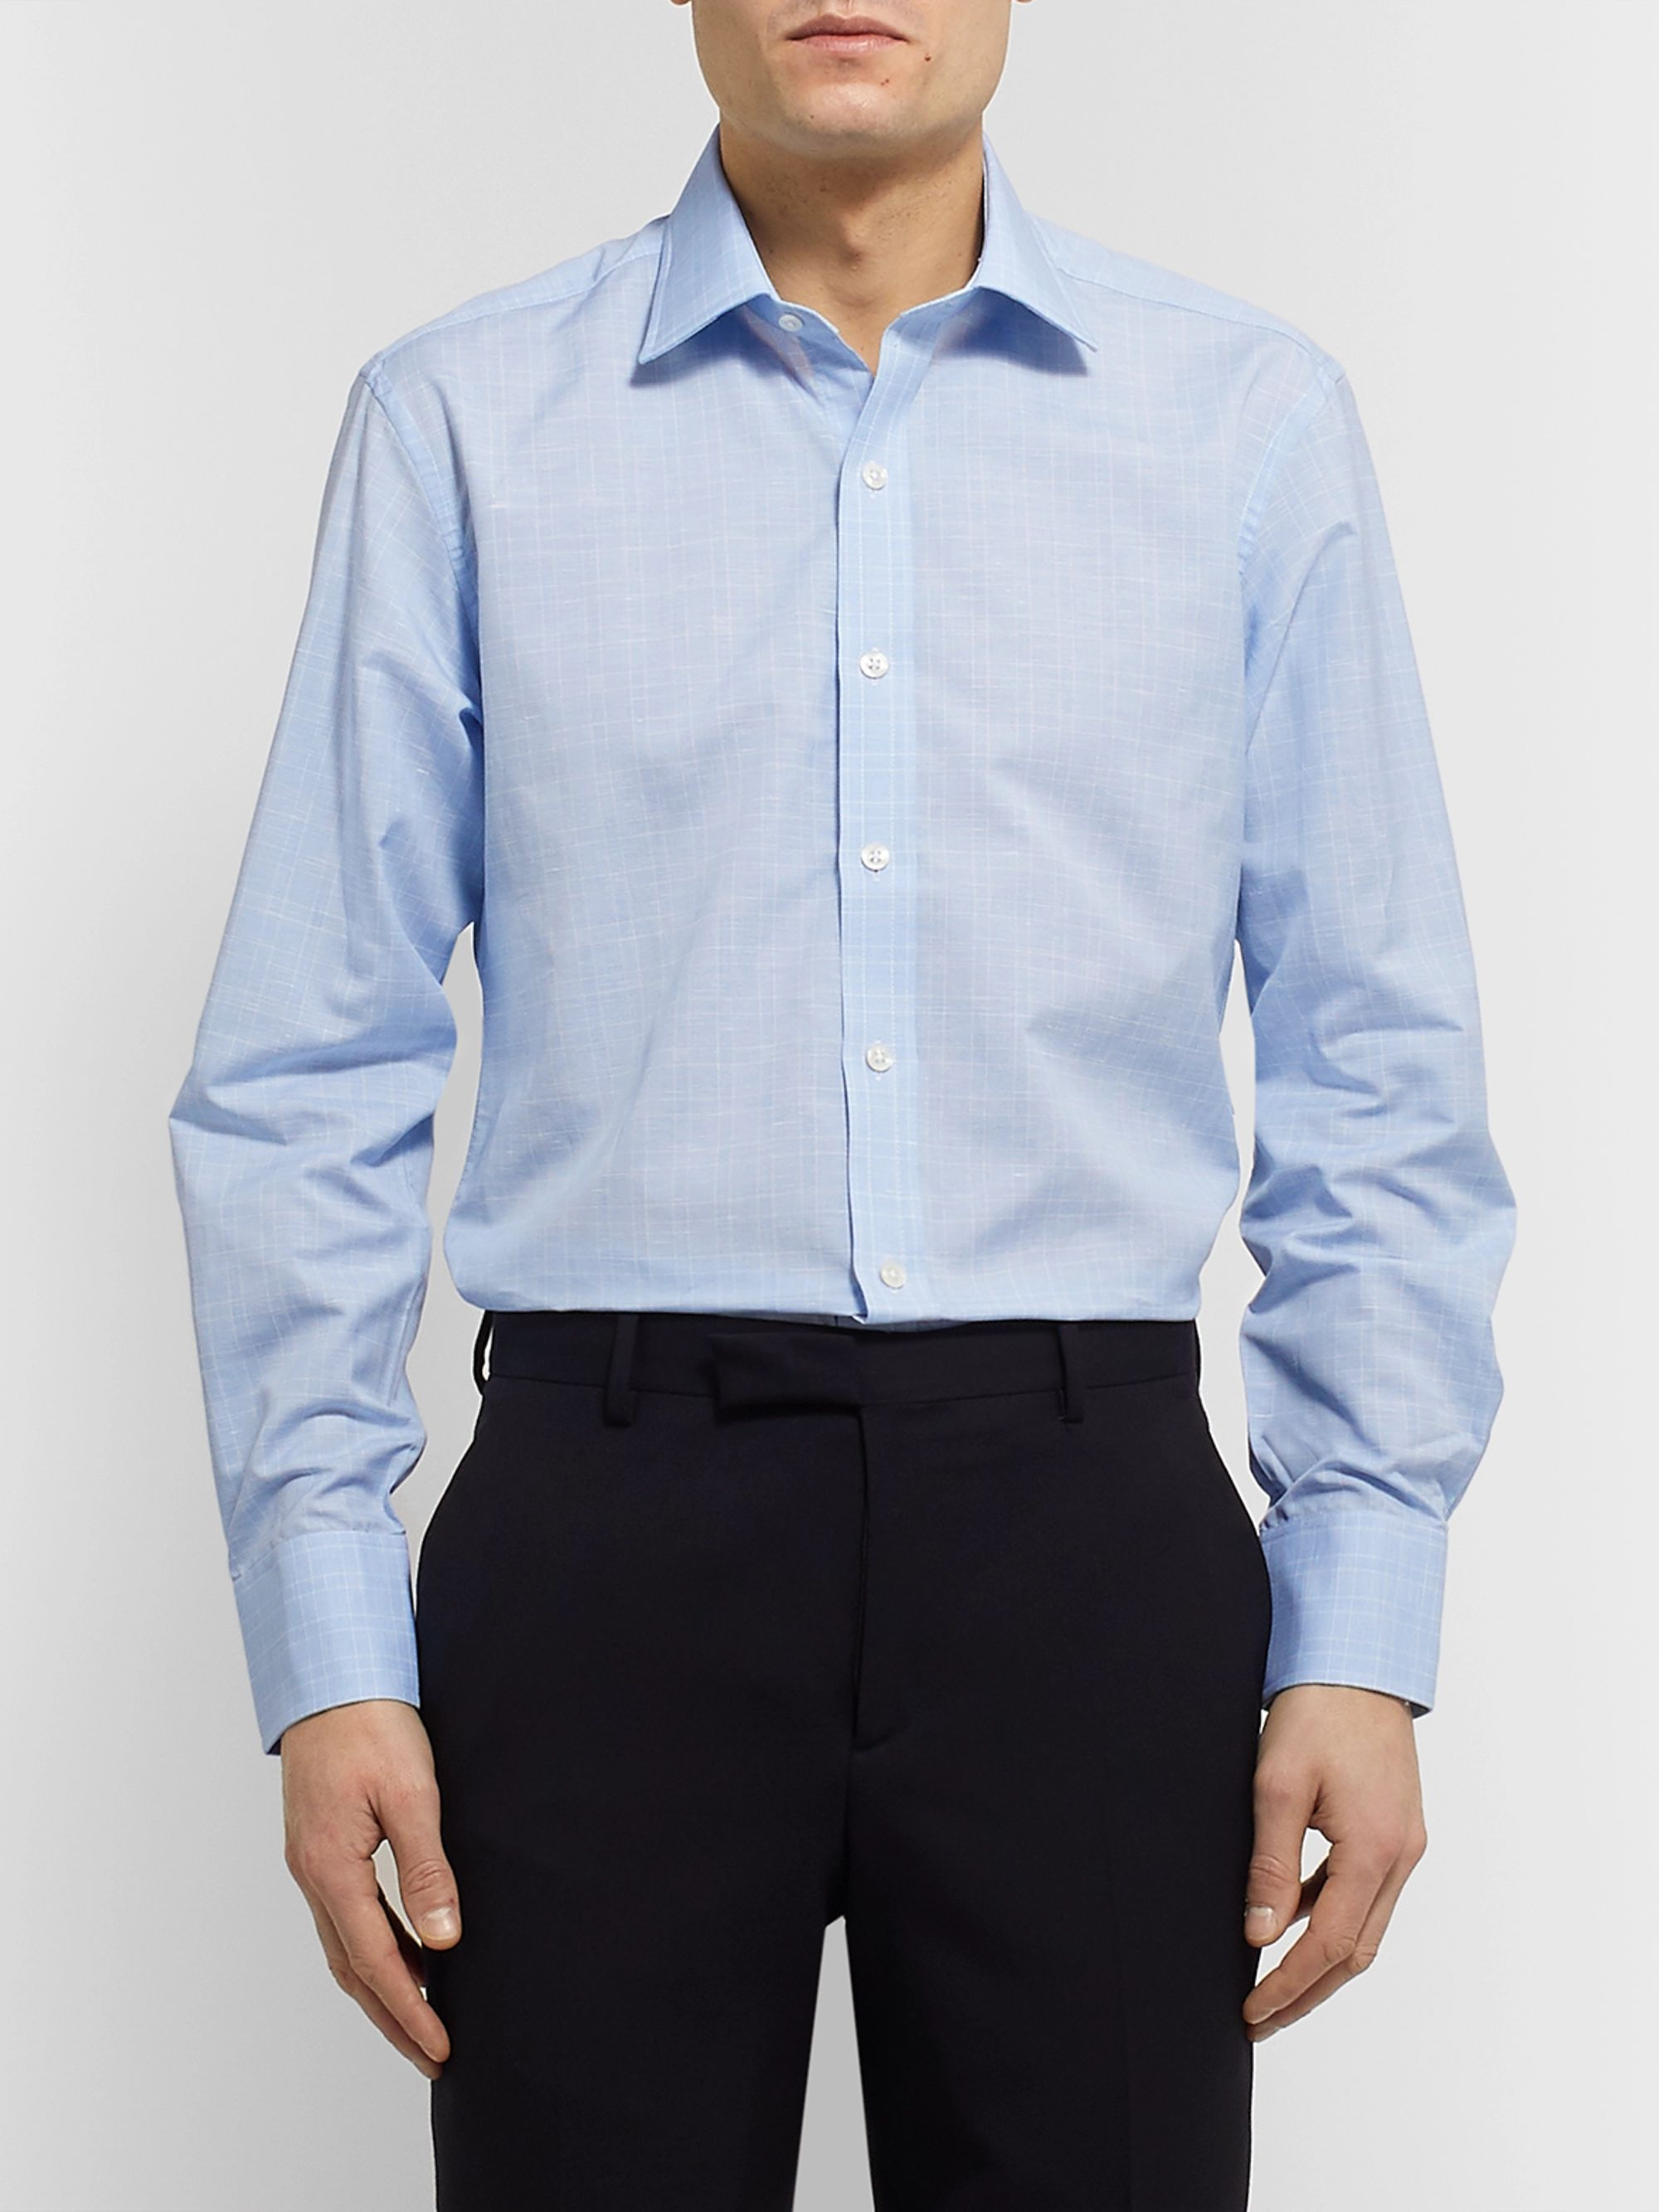 Emma Willis Prince of Wales Checked Cotton Shirt